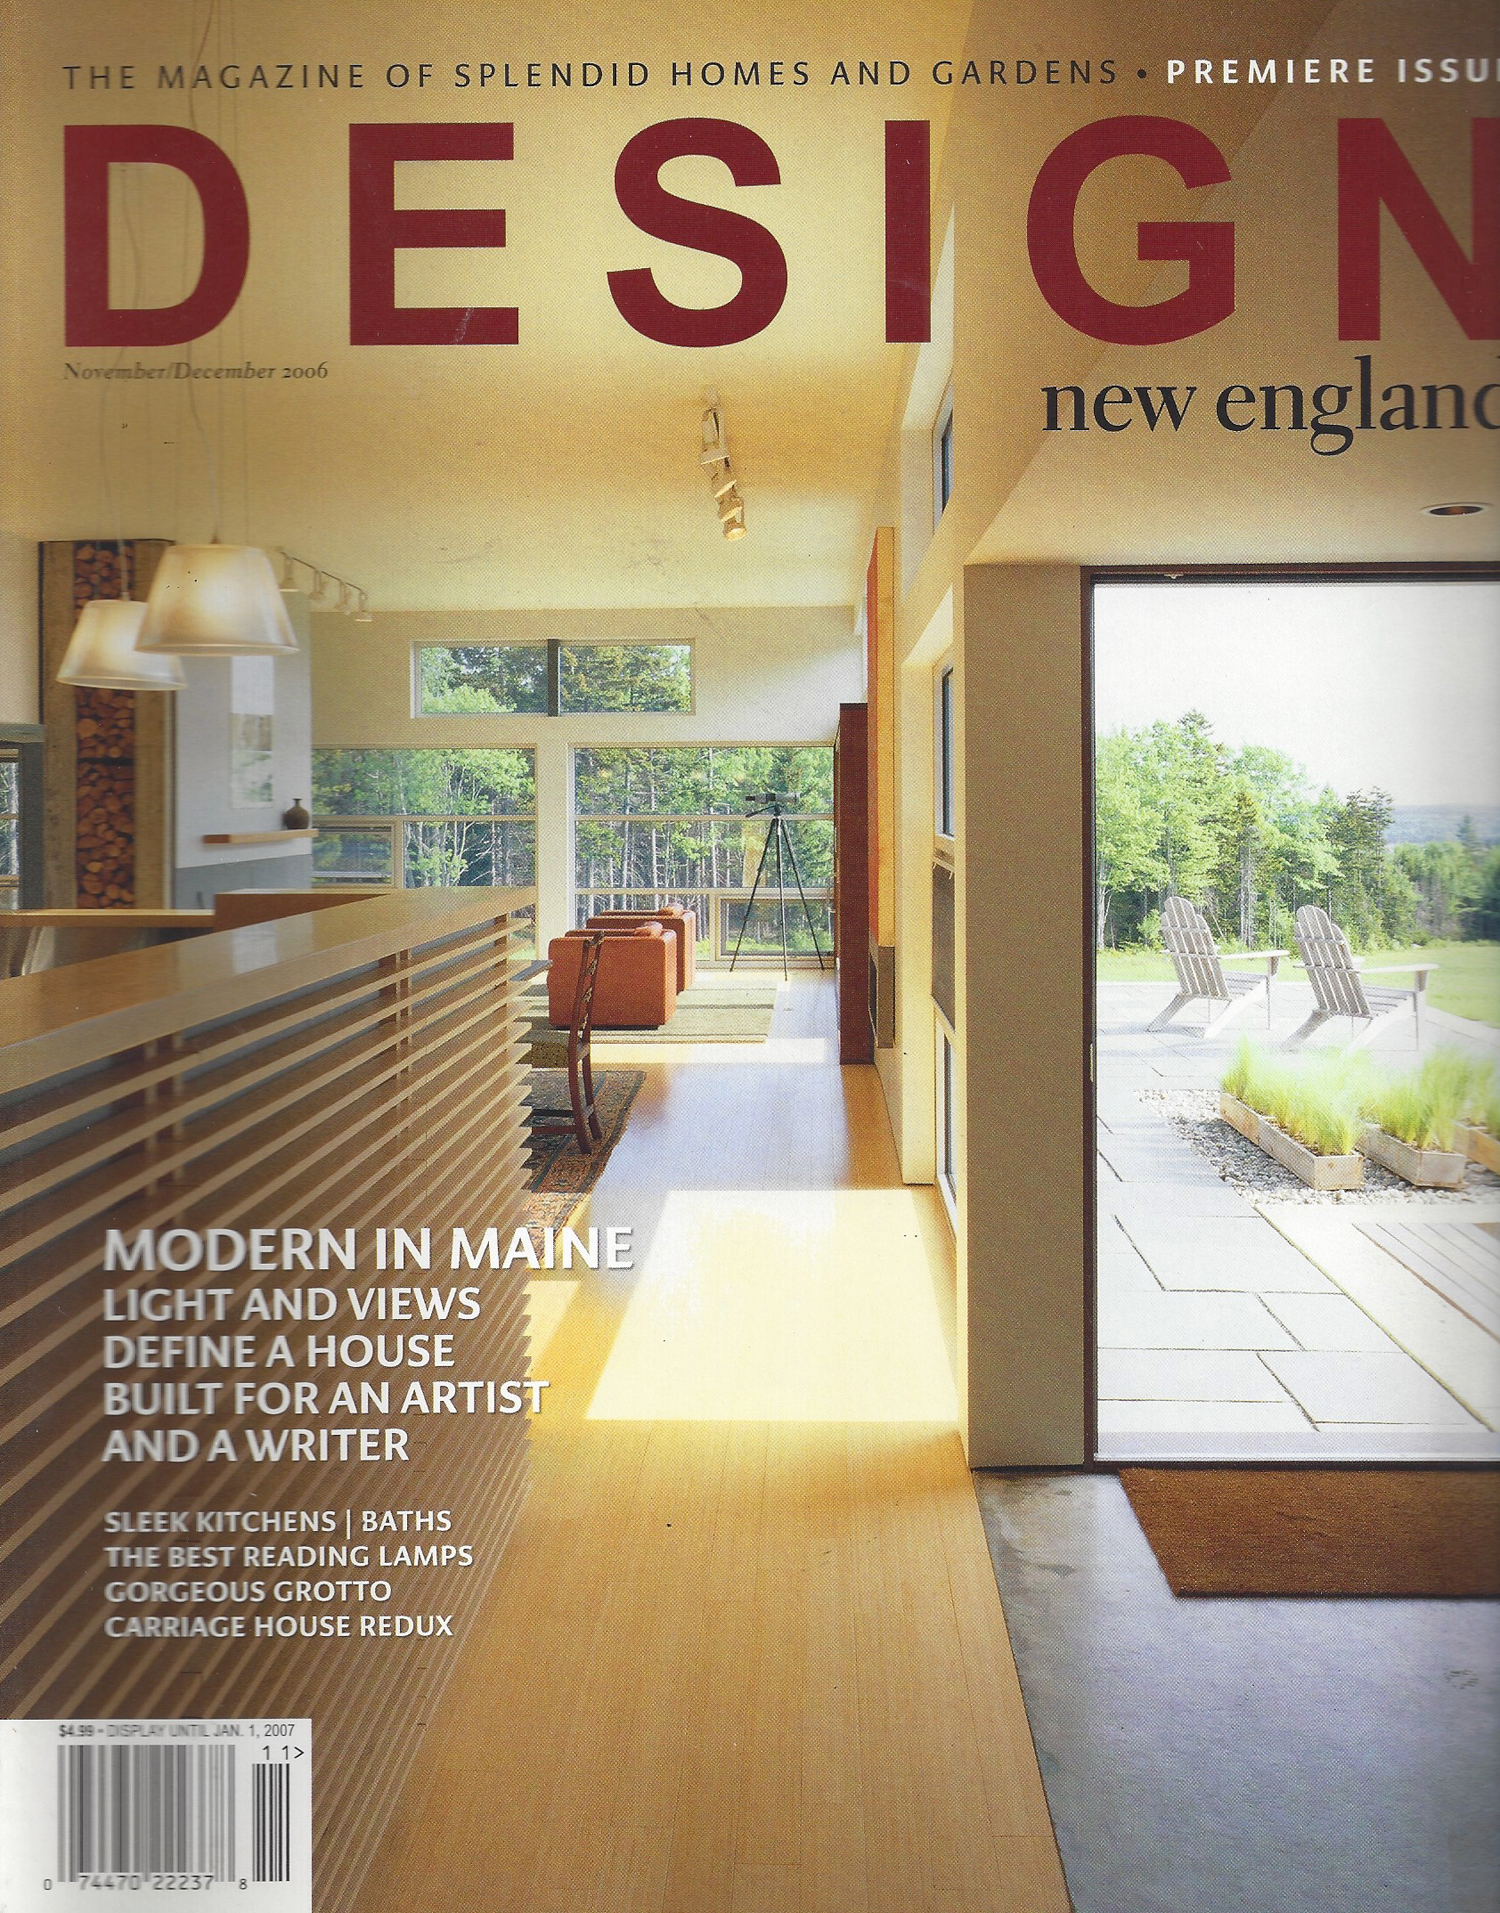 design-new-england-cover-unfinished